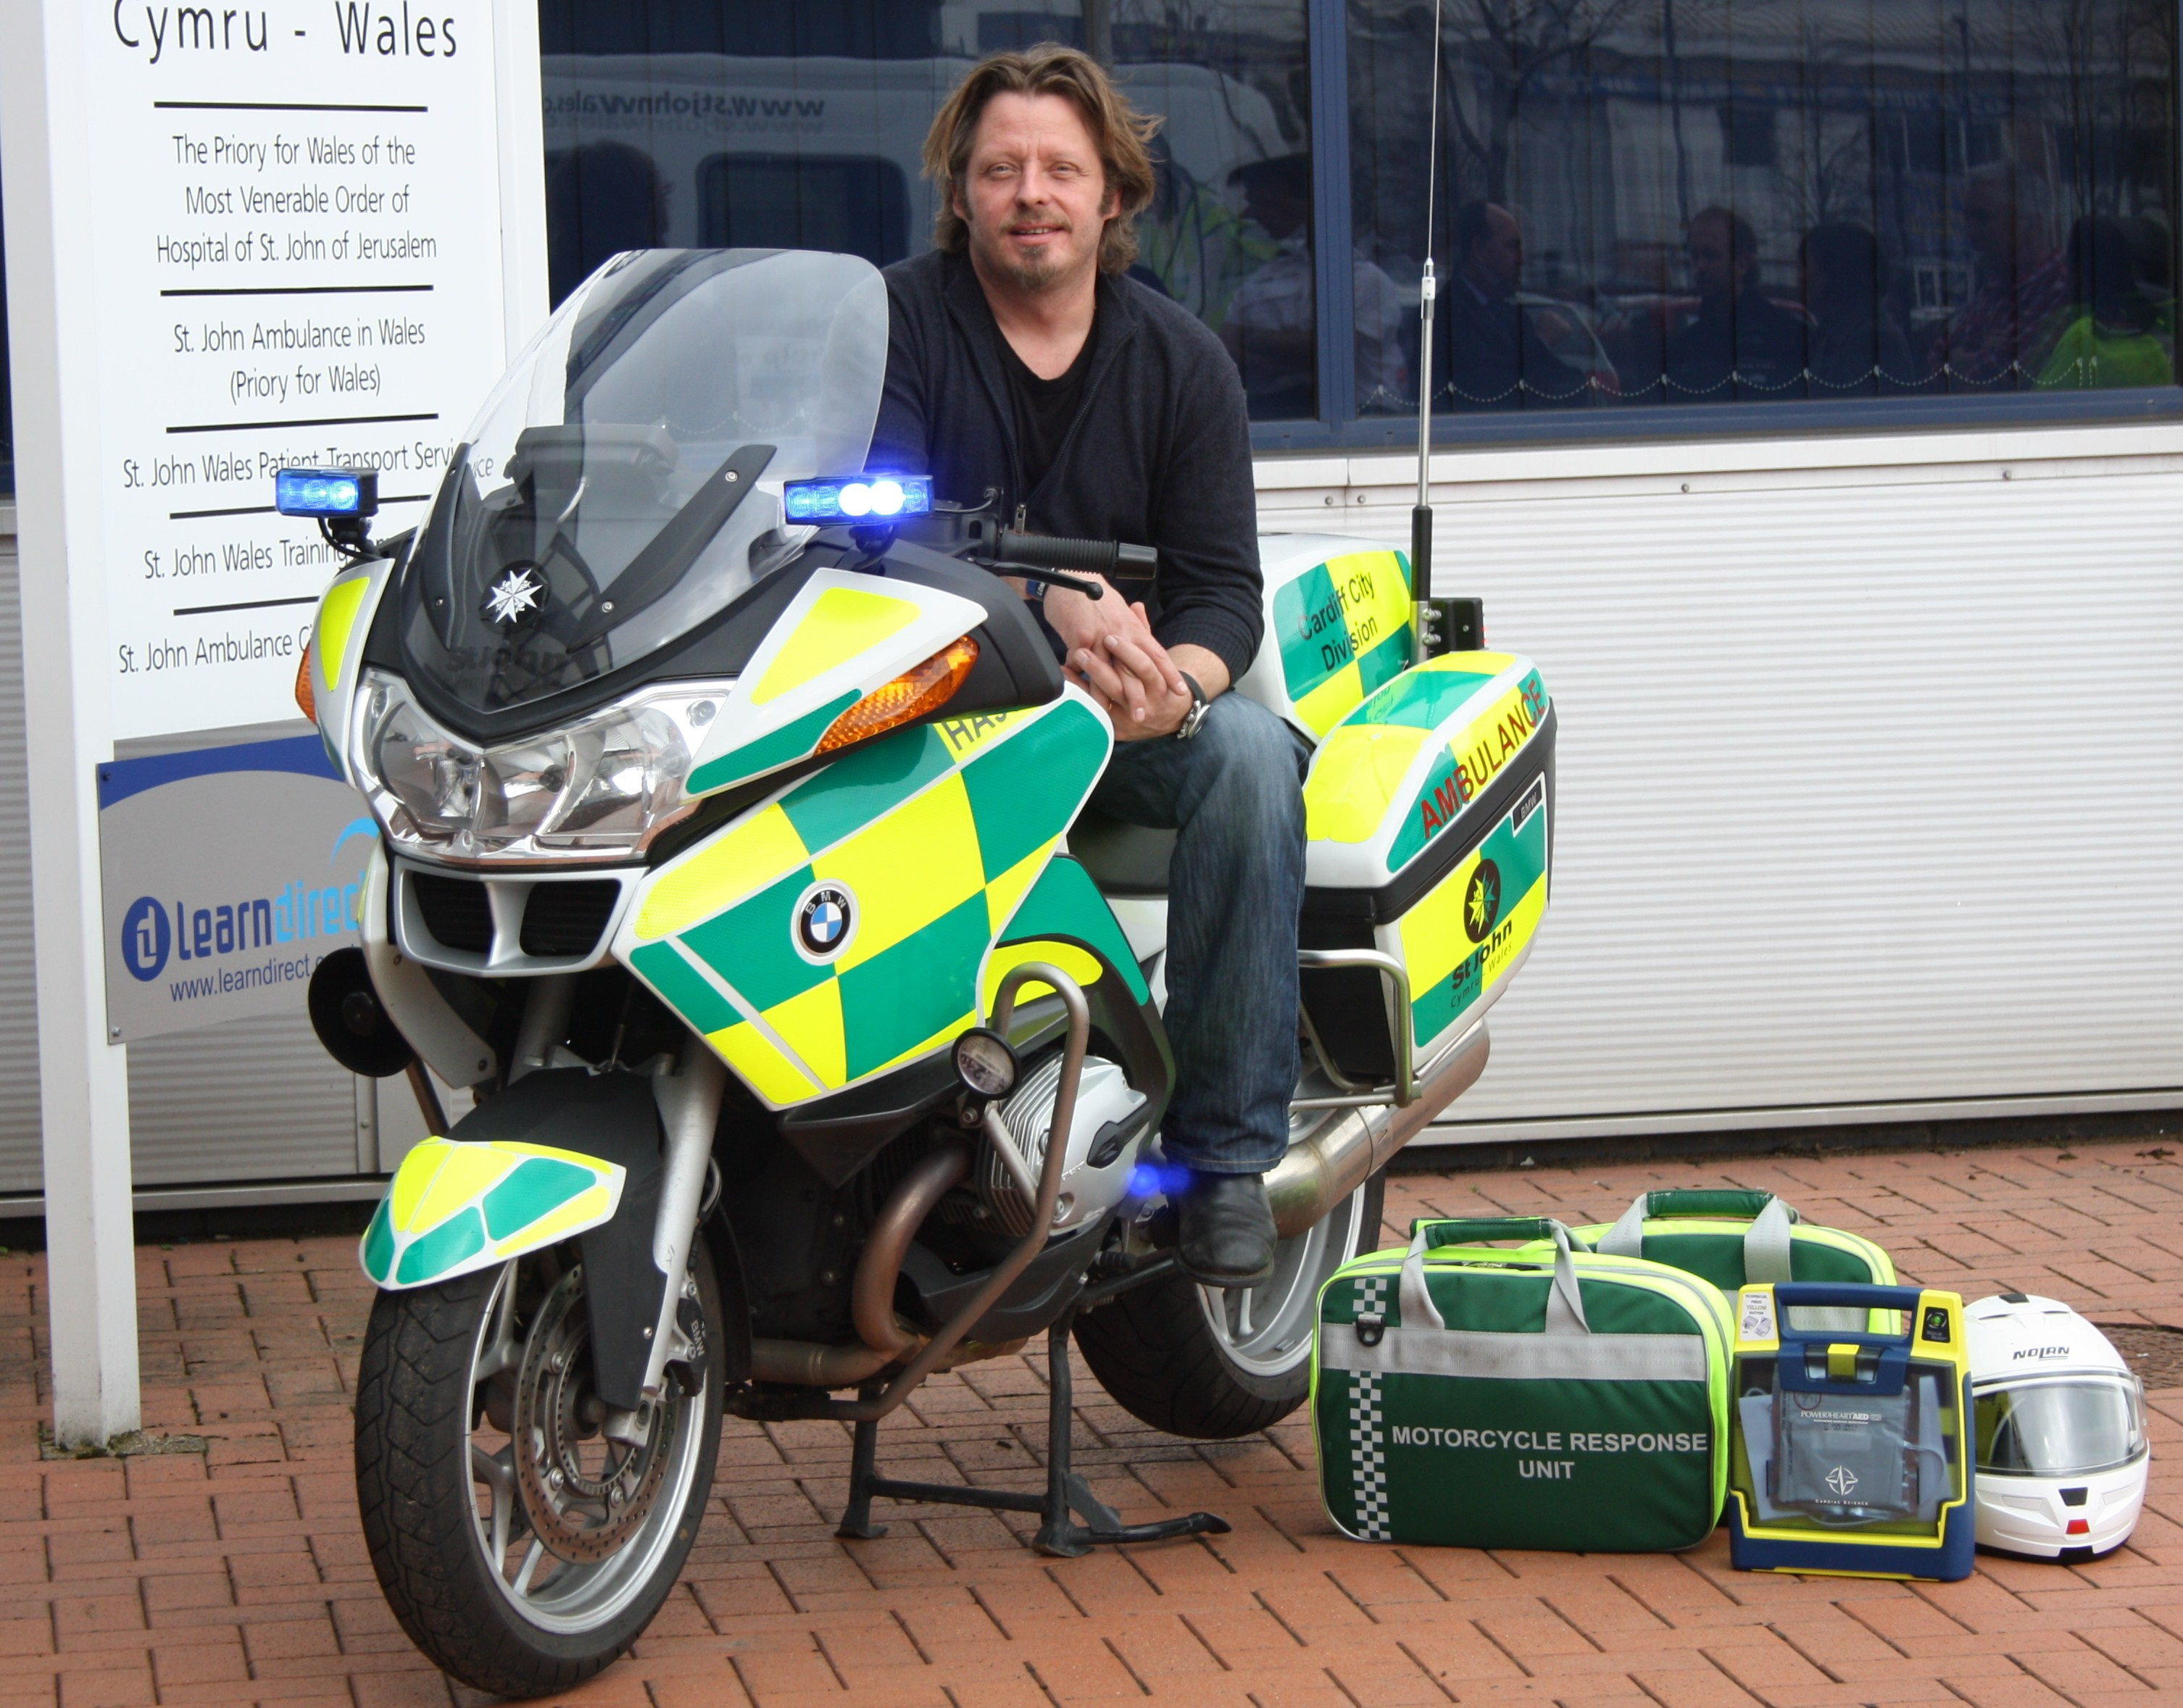 charley boorman accidentcharley boorman shop, charley boorman wikipedia, charley boorman injury, charley boorman 2016, charley boorman australia, charley boorman, charley boorman wife, charley boorman by any means, charley boorman extreme frontiers, charley boorman ewan mcgregor, charley boorman race to dakar, charley boorman instagram, charley boorman dakar, charley boorman wiki, charley boorman usa adventure, charley boorman sister, charley boorman long way down, charley boorman net worth, charley boorman cancer, charley boorman accident